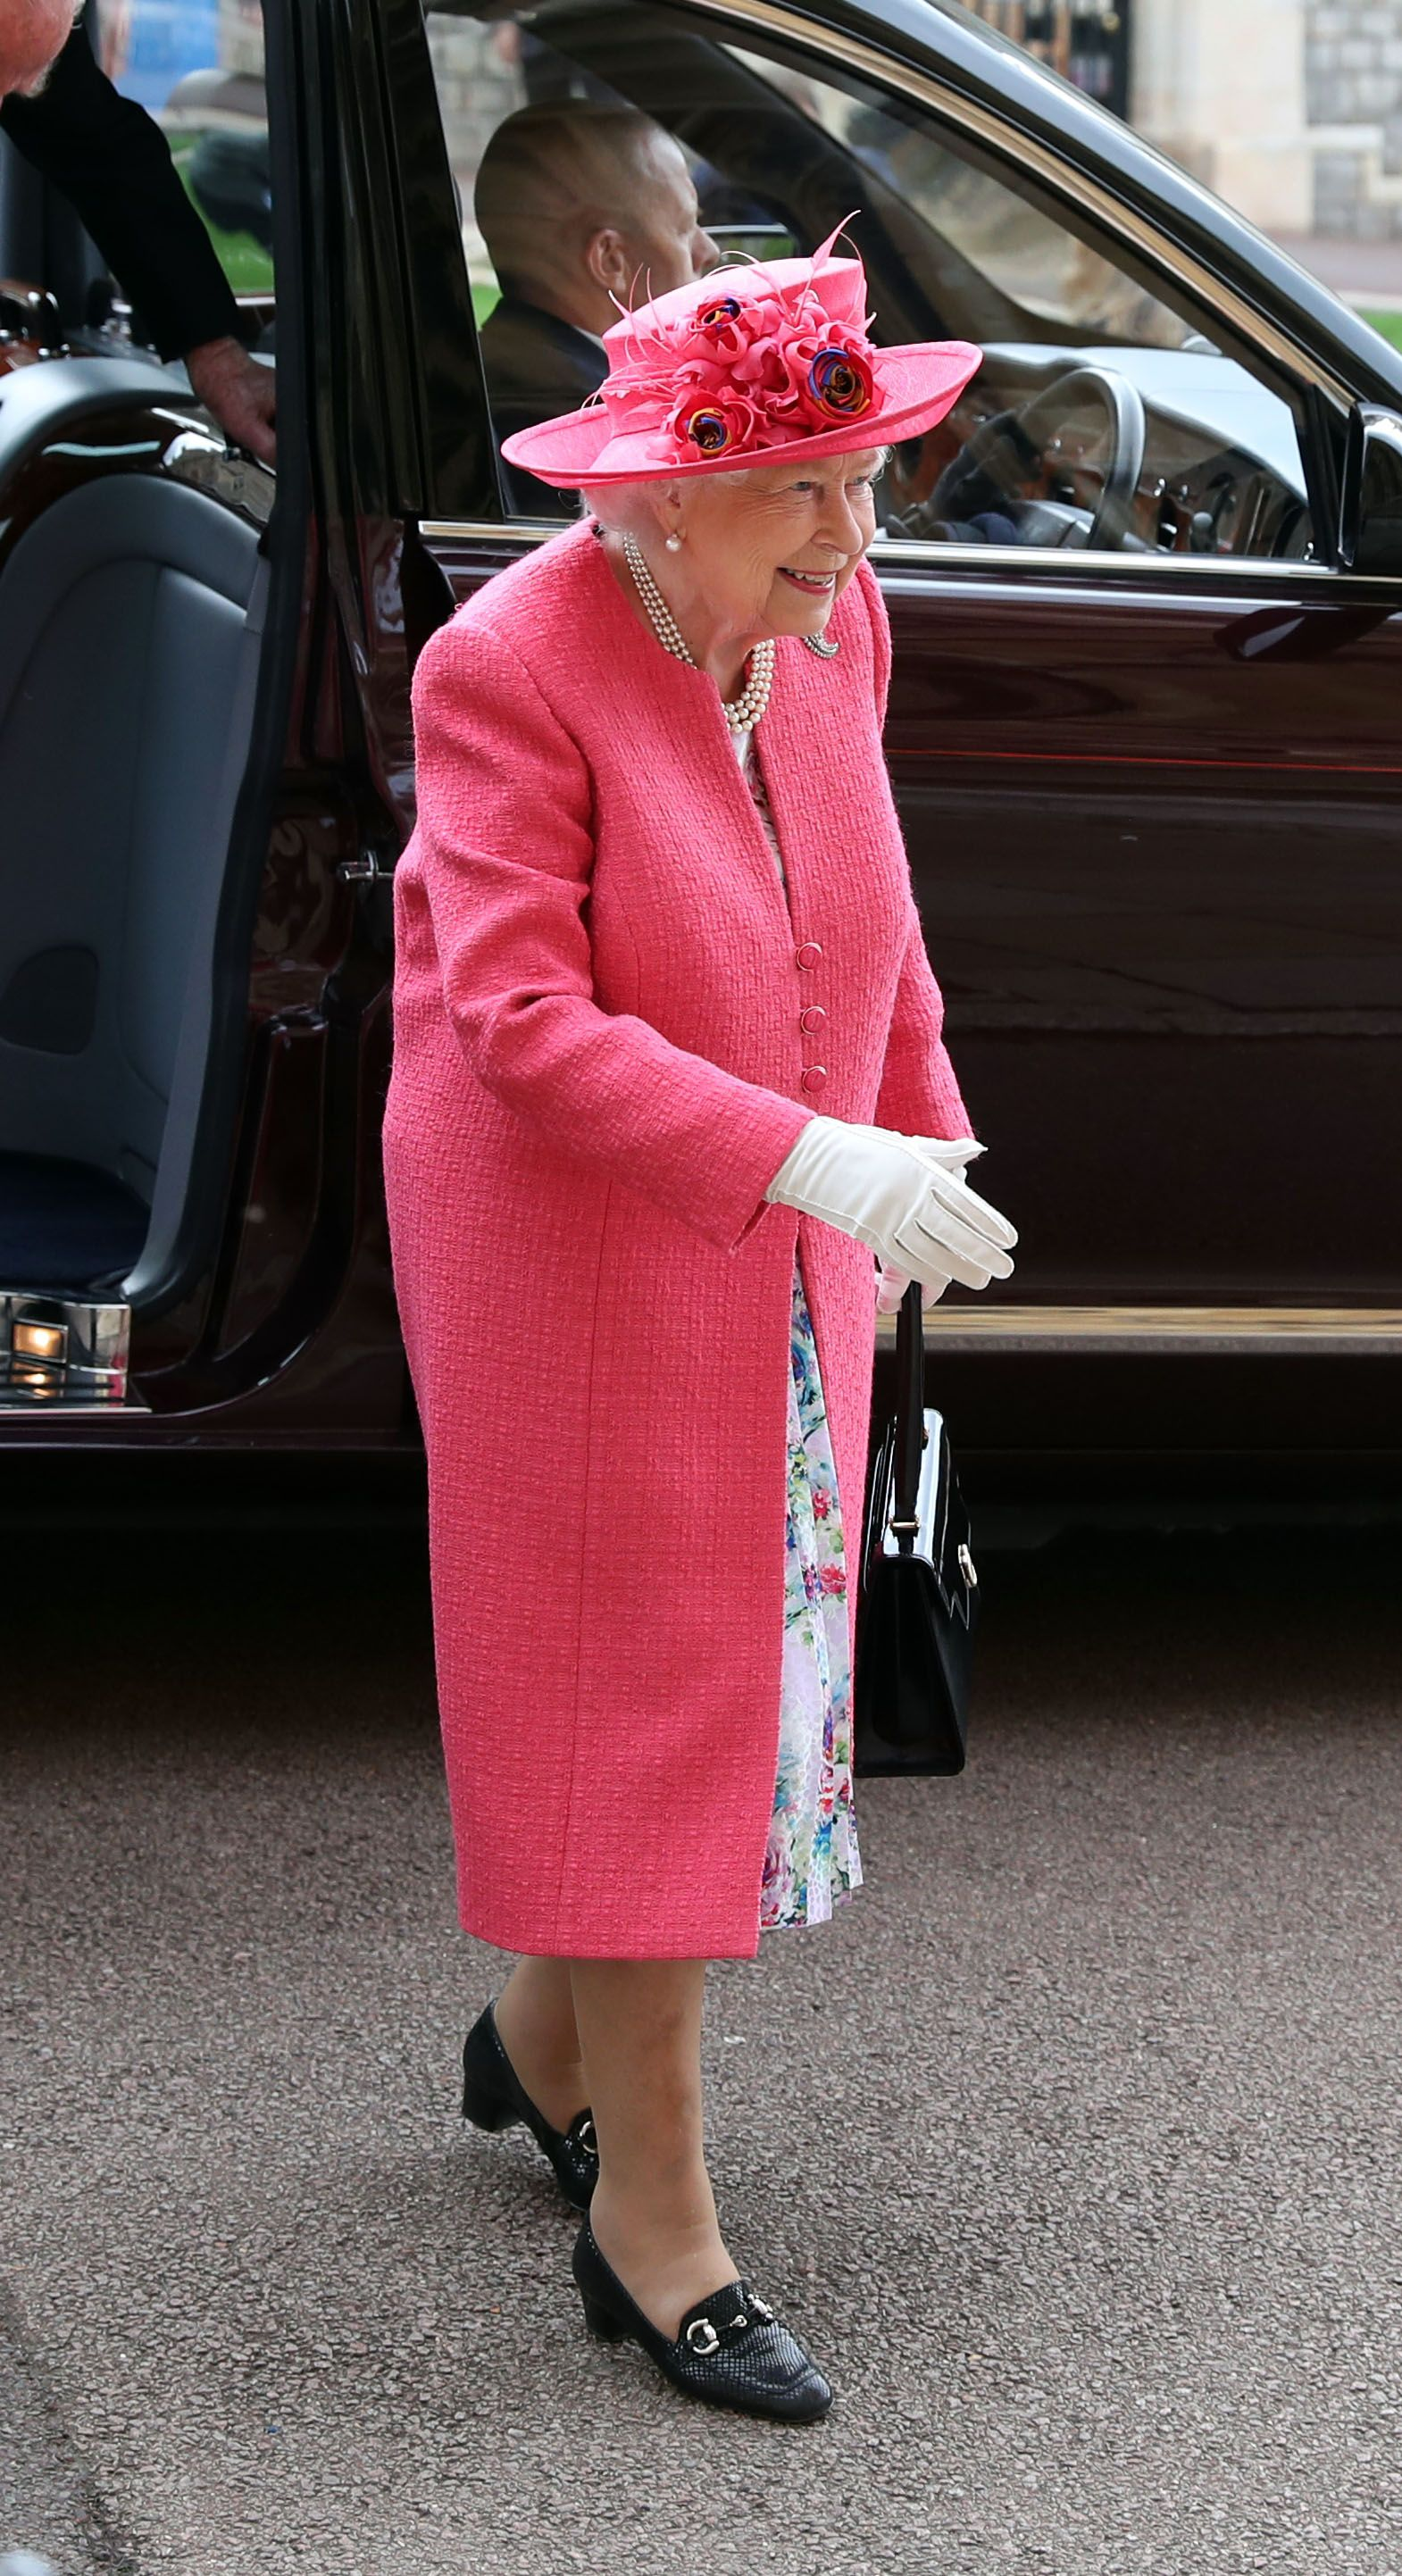 In a bright pink dresscoat and hat.